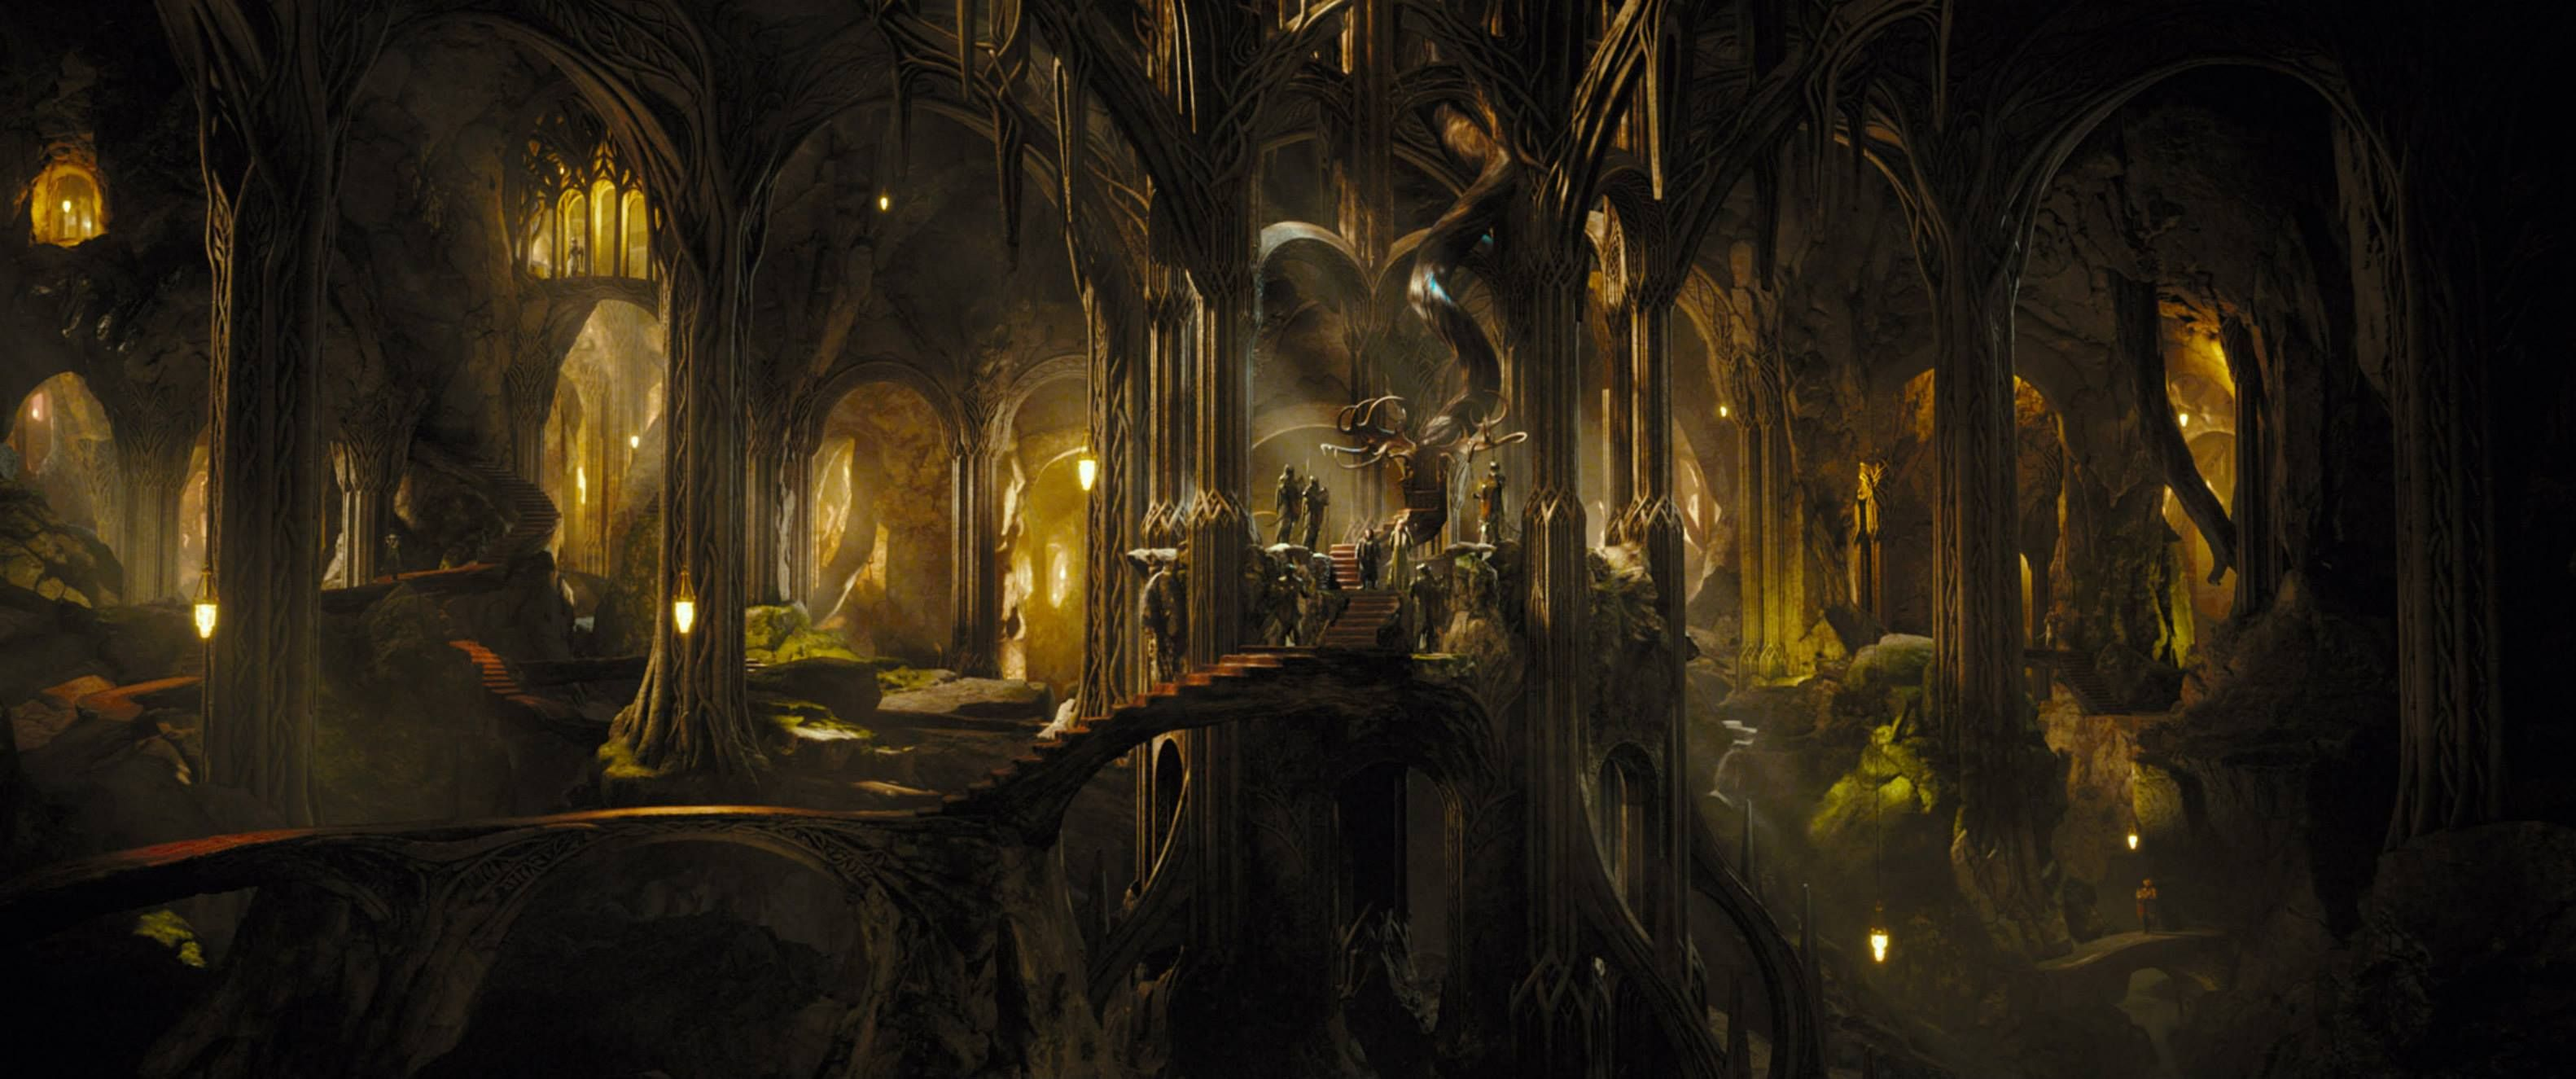 View Download Comment And Rate This 3164x1325 The Hobbit Desolation Of Smaug Wallpaper